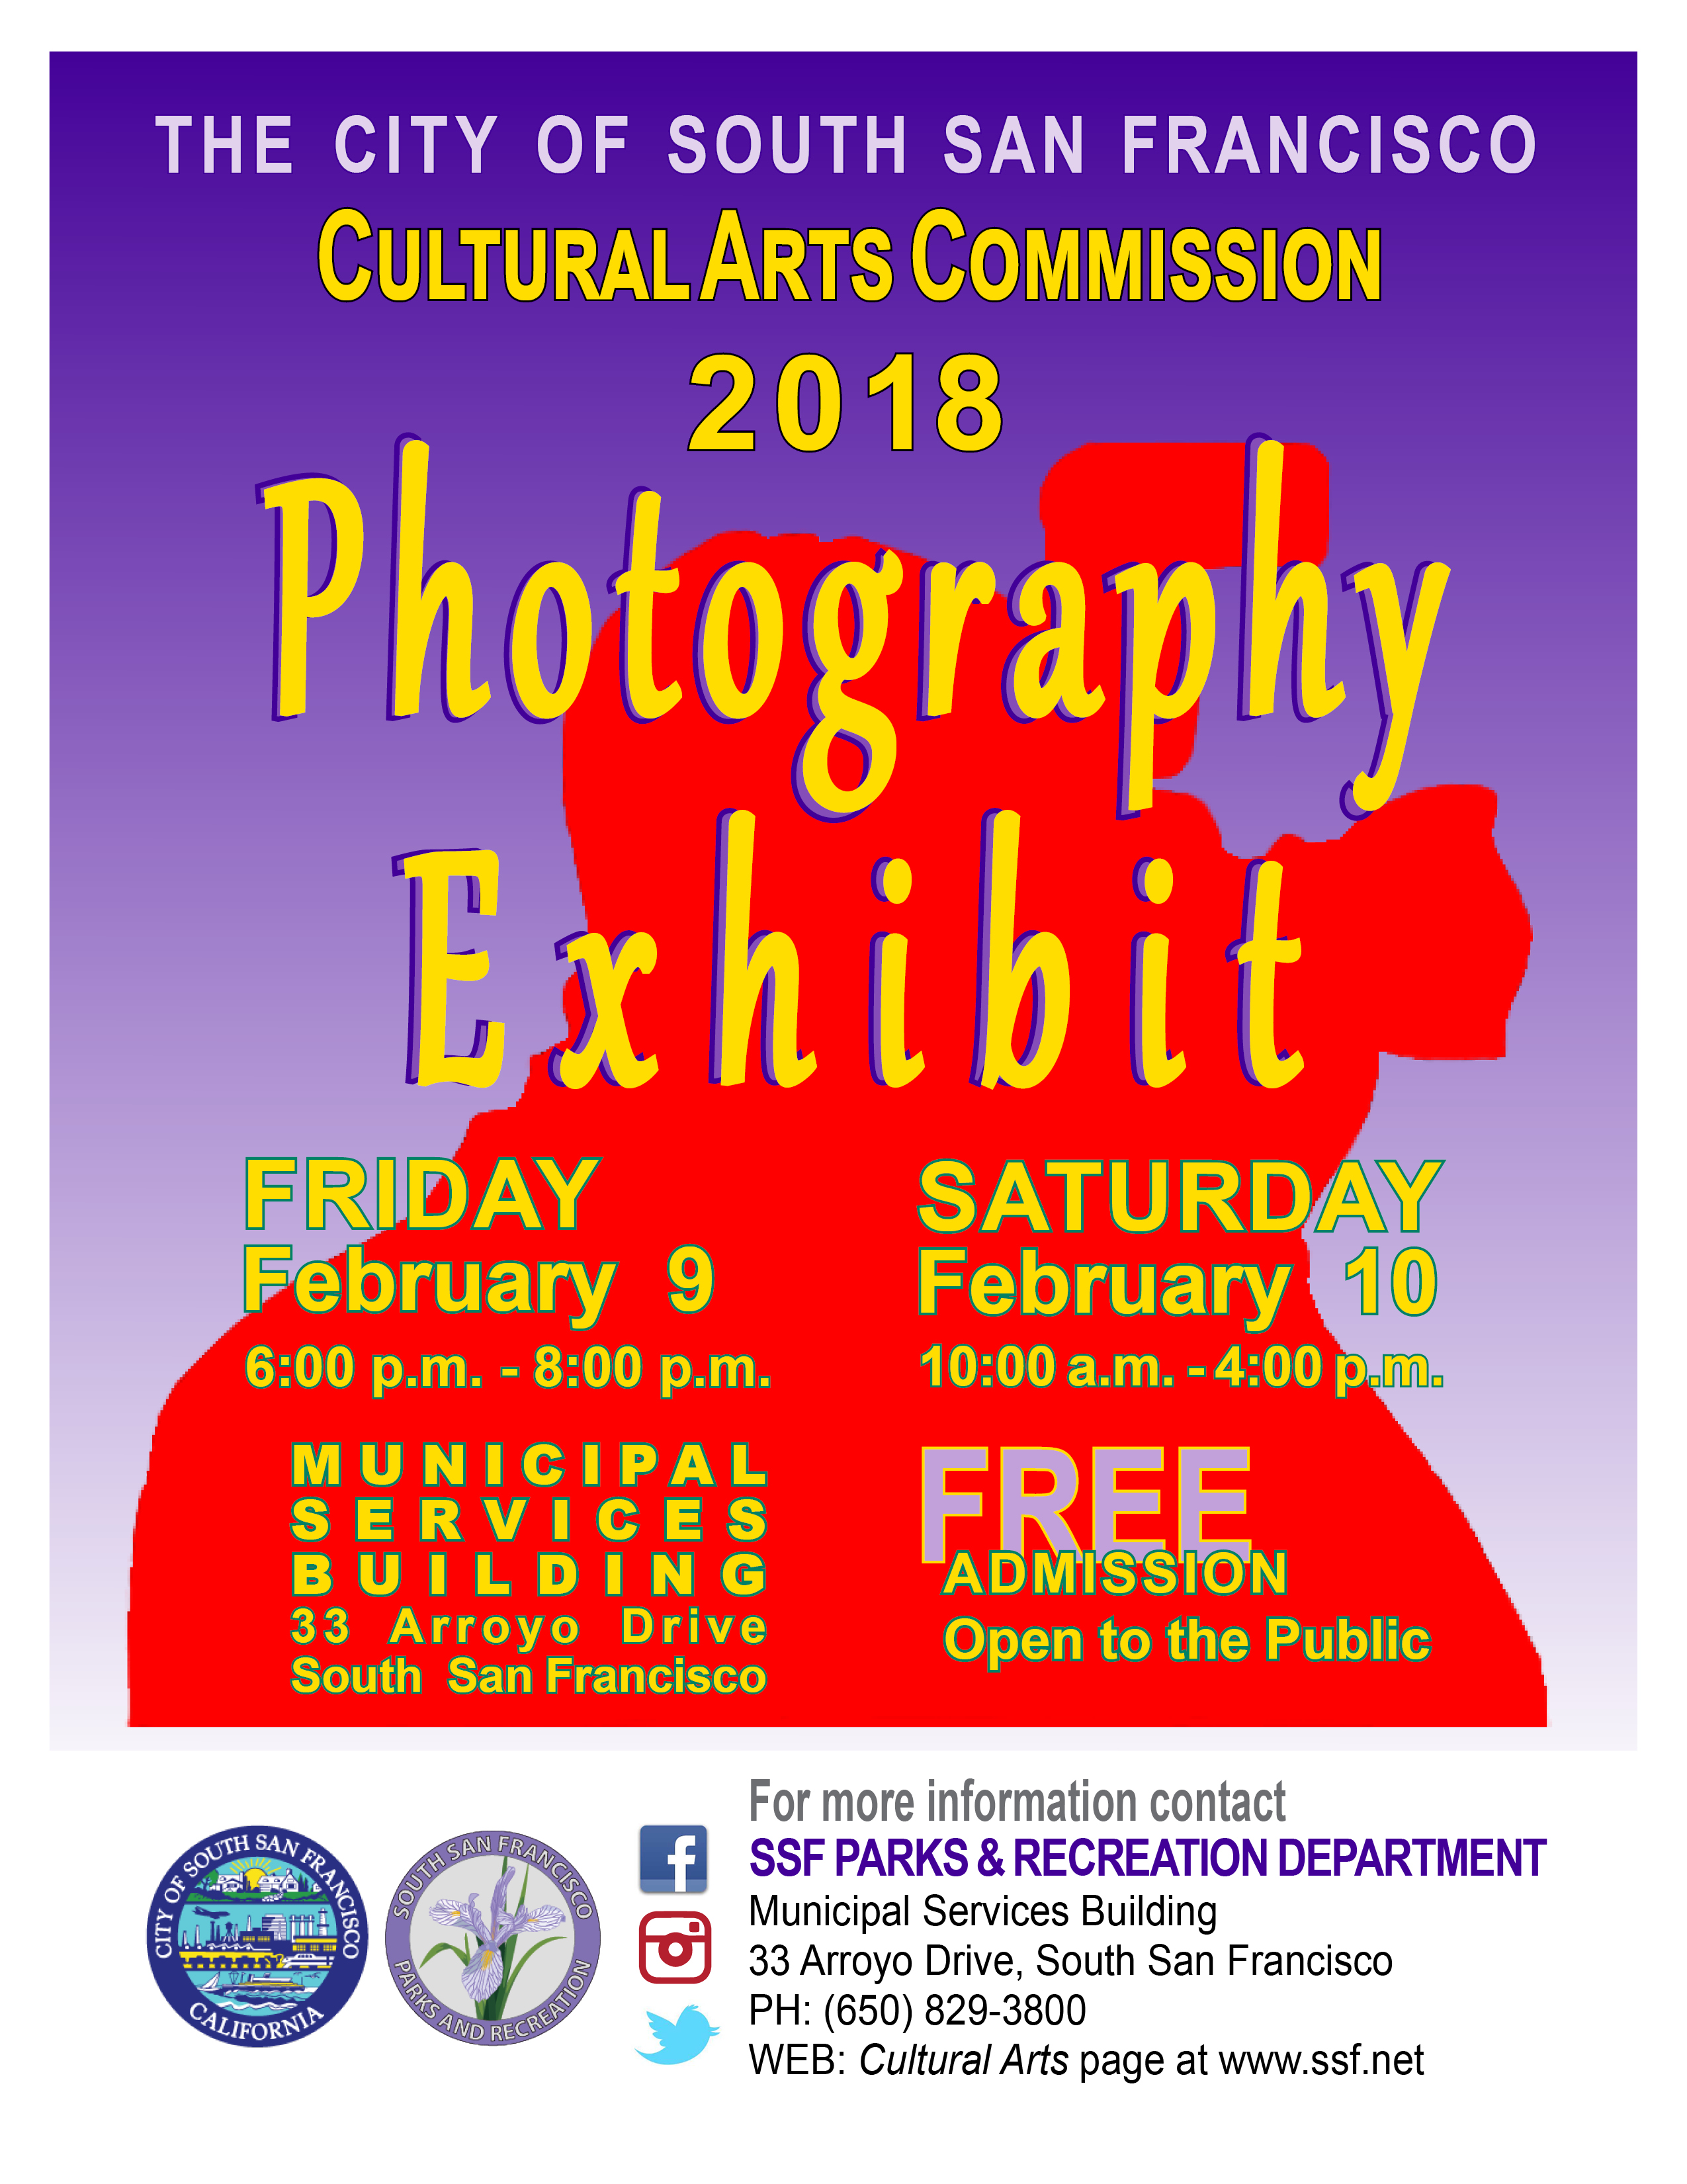 The South San Francisco Cultural Arts Commission presents the: 2018 Photography Exhibit